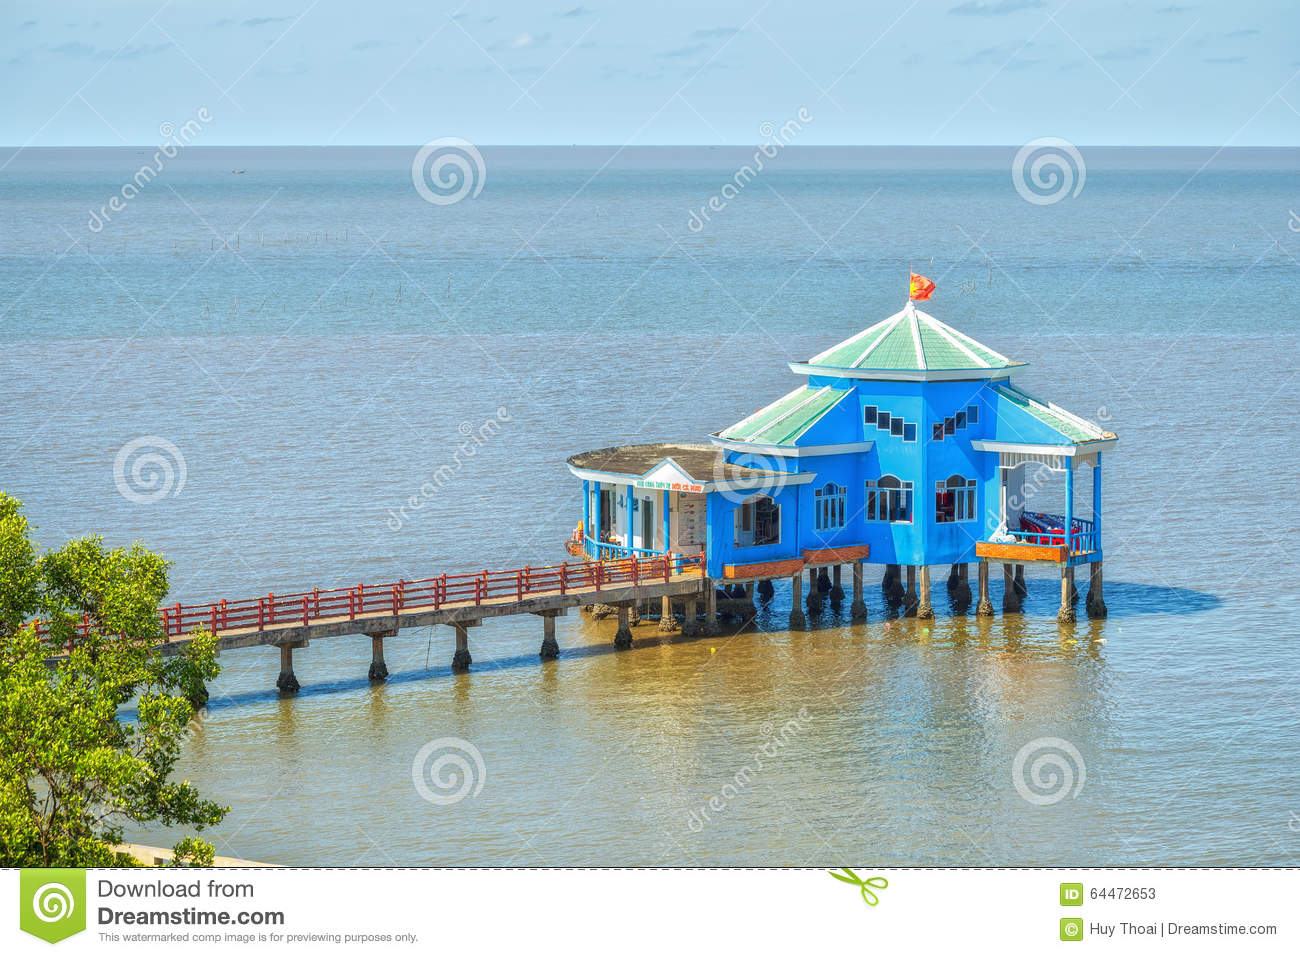 Ca Mau Vietnam  city photos gallery : Ca Mau, Vietnam April 7th, 2015: Floating restaurant on the bay with ...